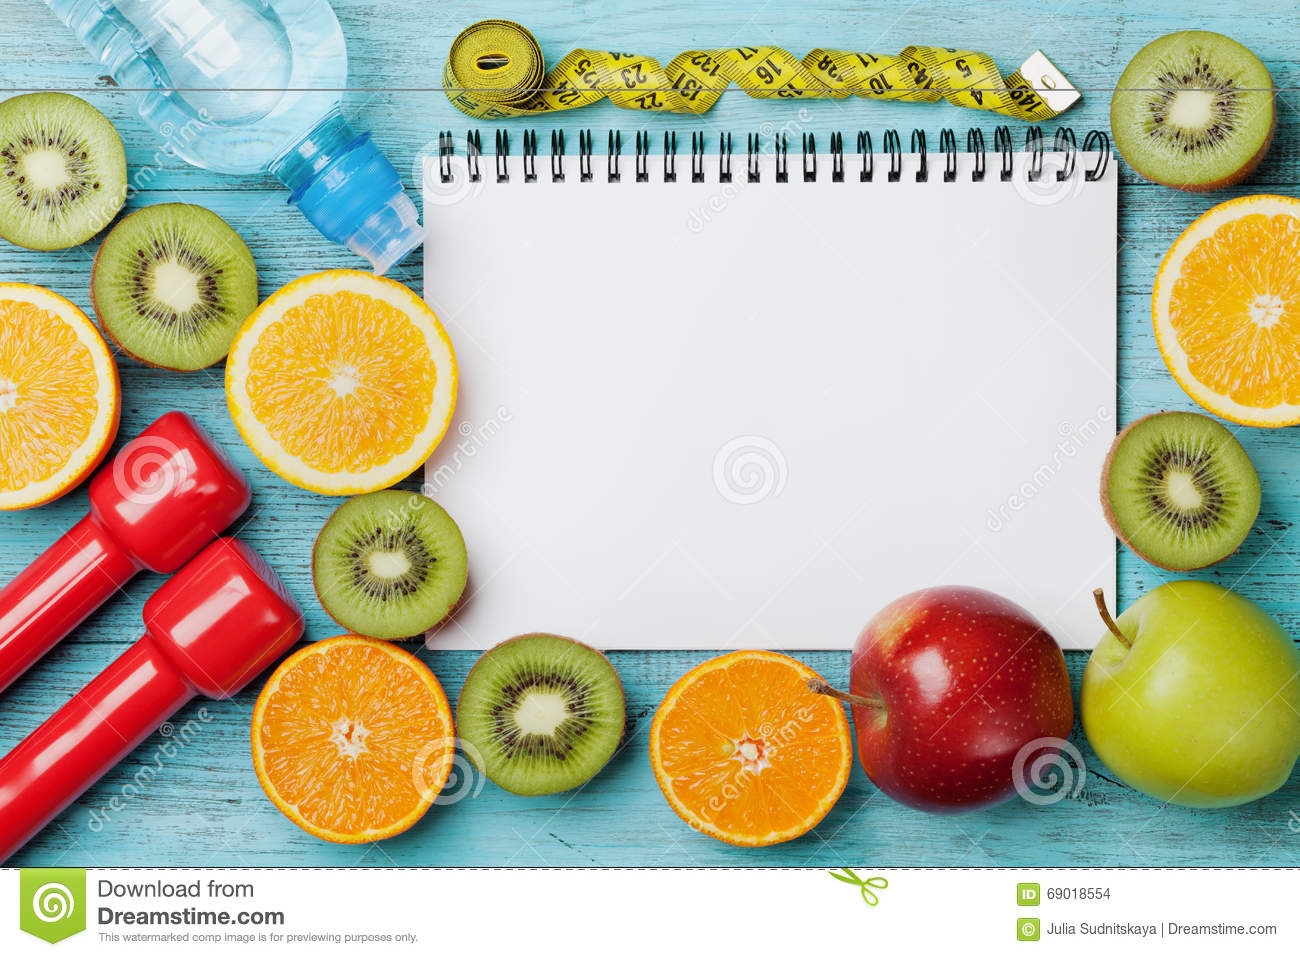 diet-plan-menu-program-tape-measure-water-dumbbells-diet-food-fresh-fruits-blue-background-detox-concept-weight-loss-69018554.jpg